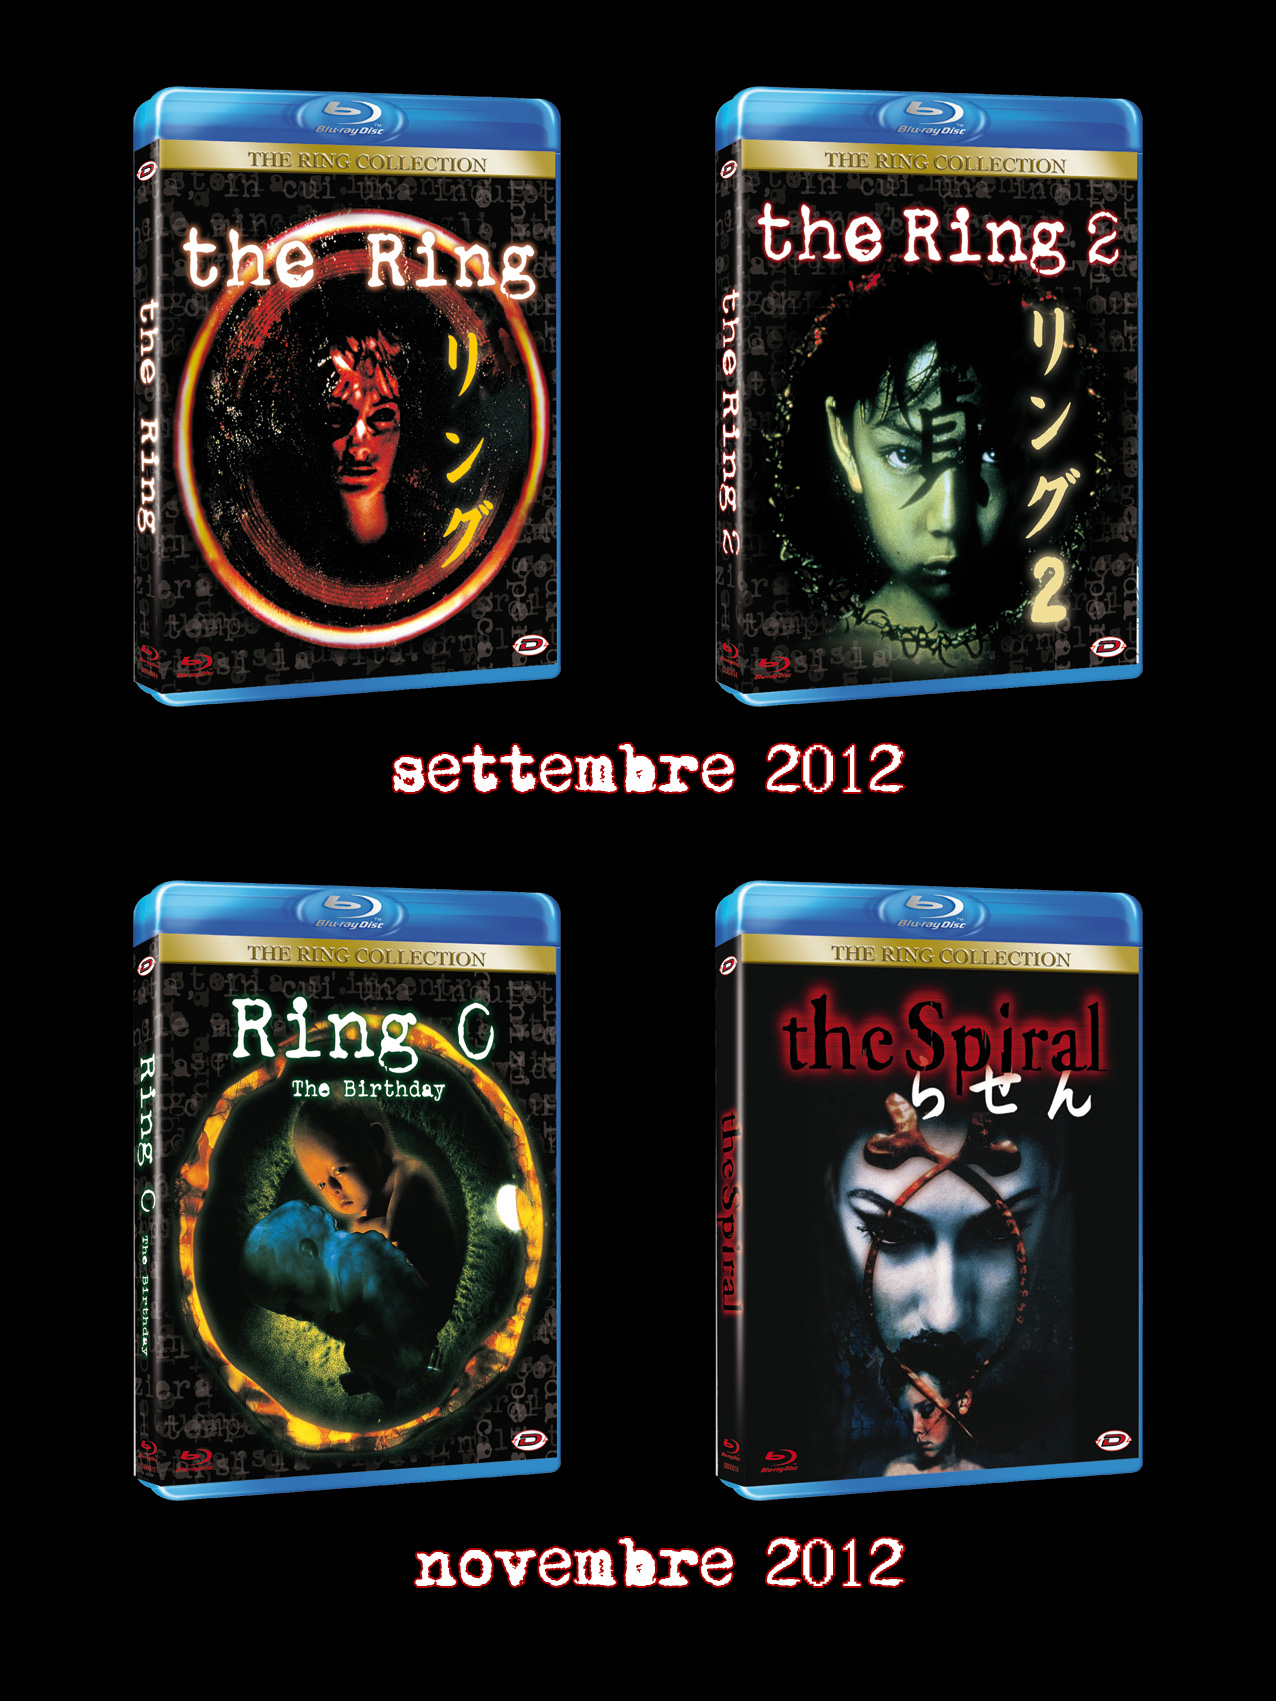 The ring tethralogy blu-ray